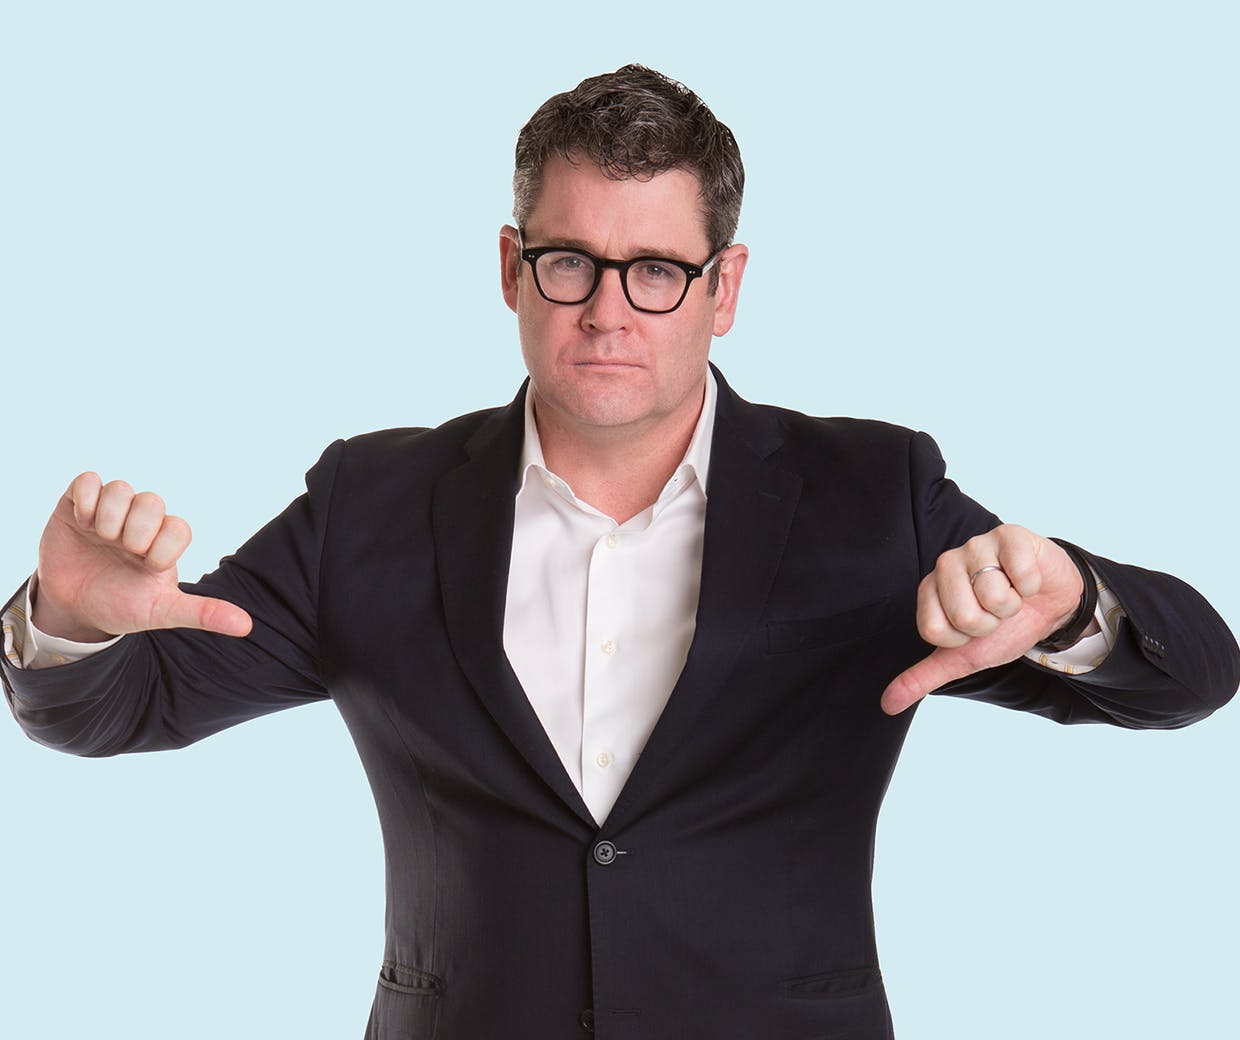 Mark Ritson - thumbs down